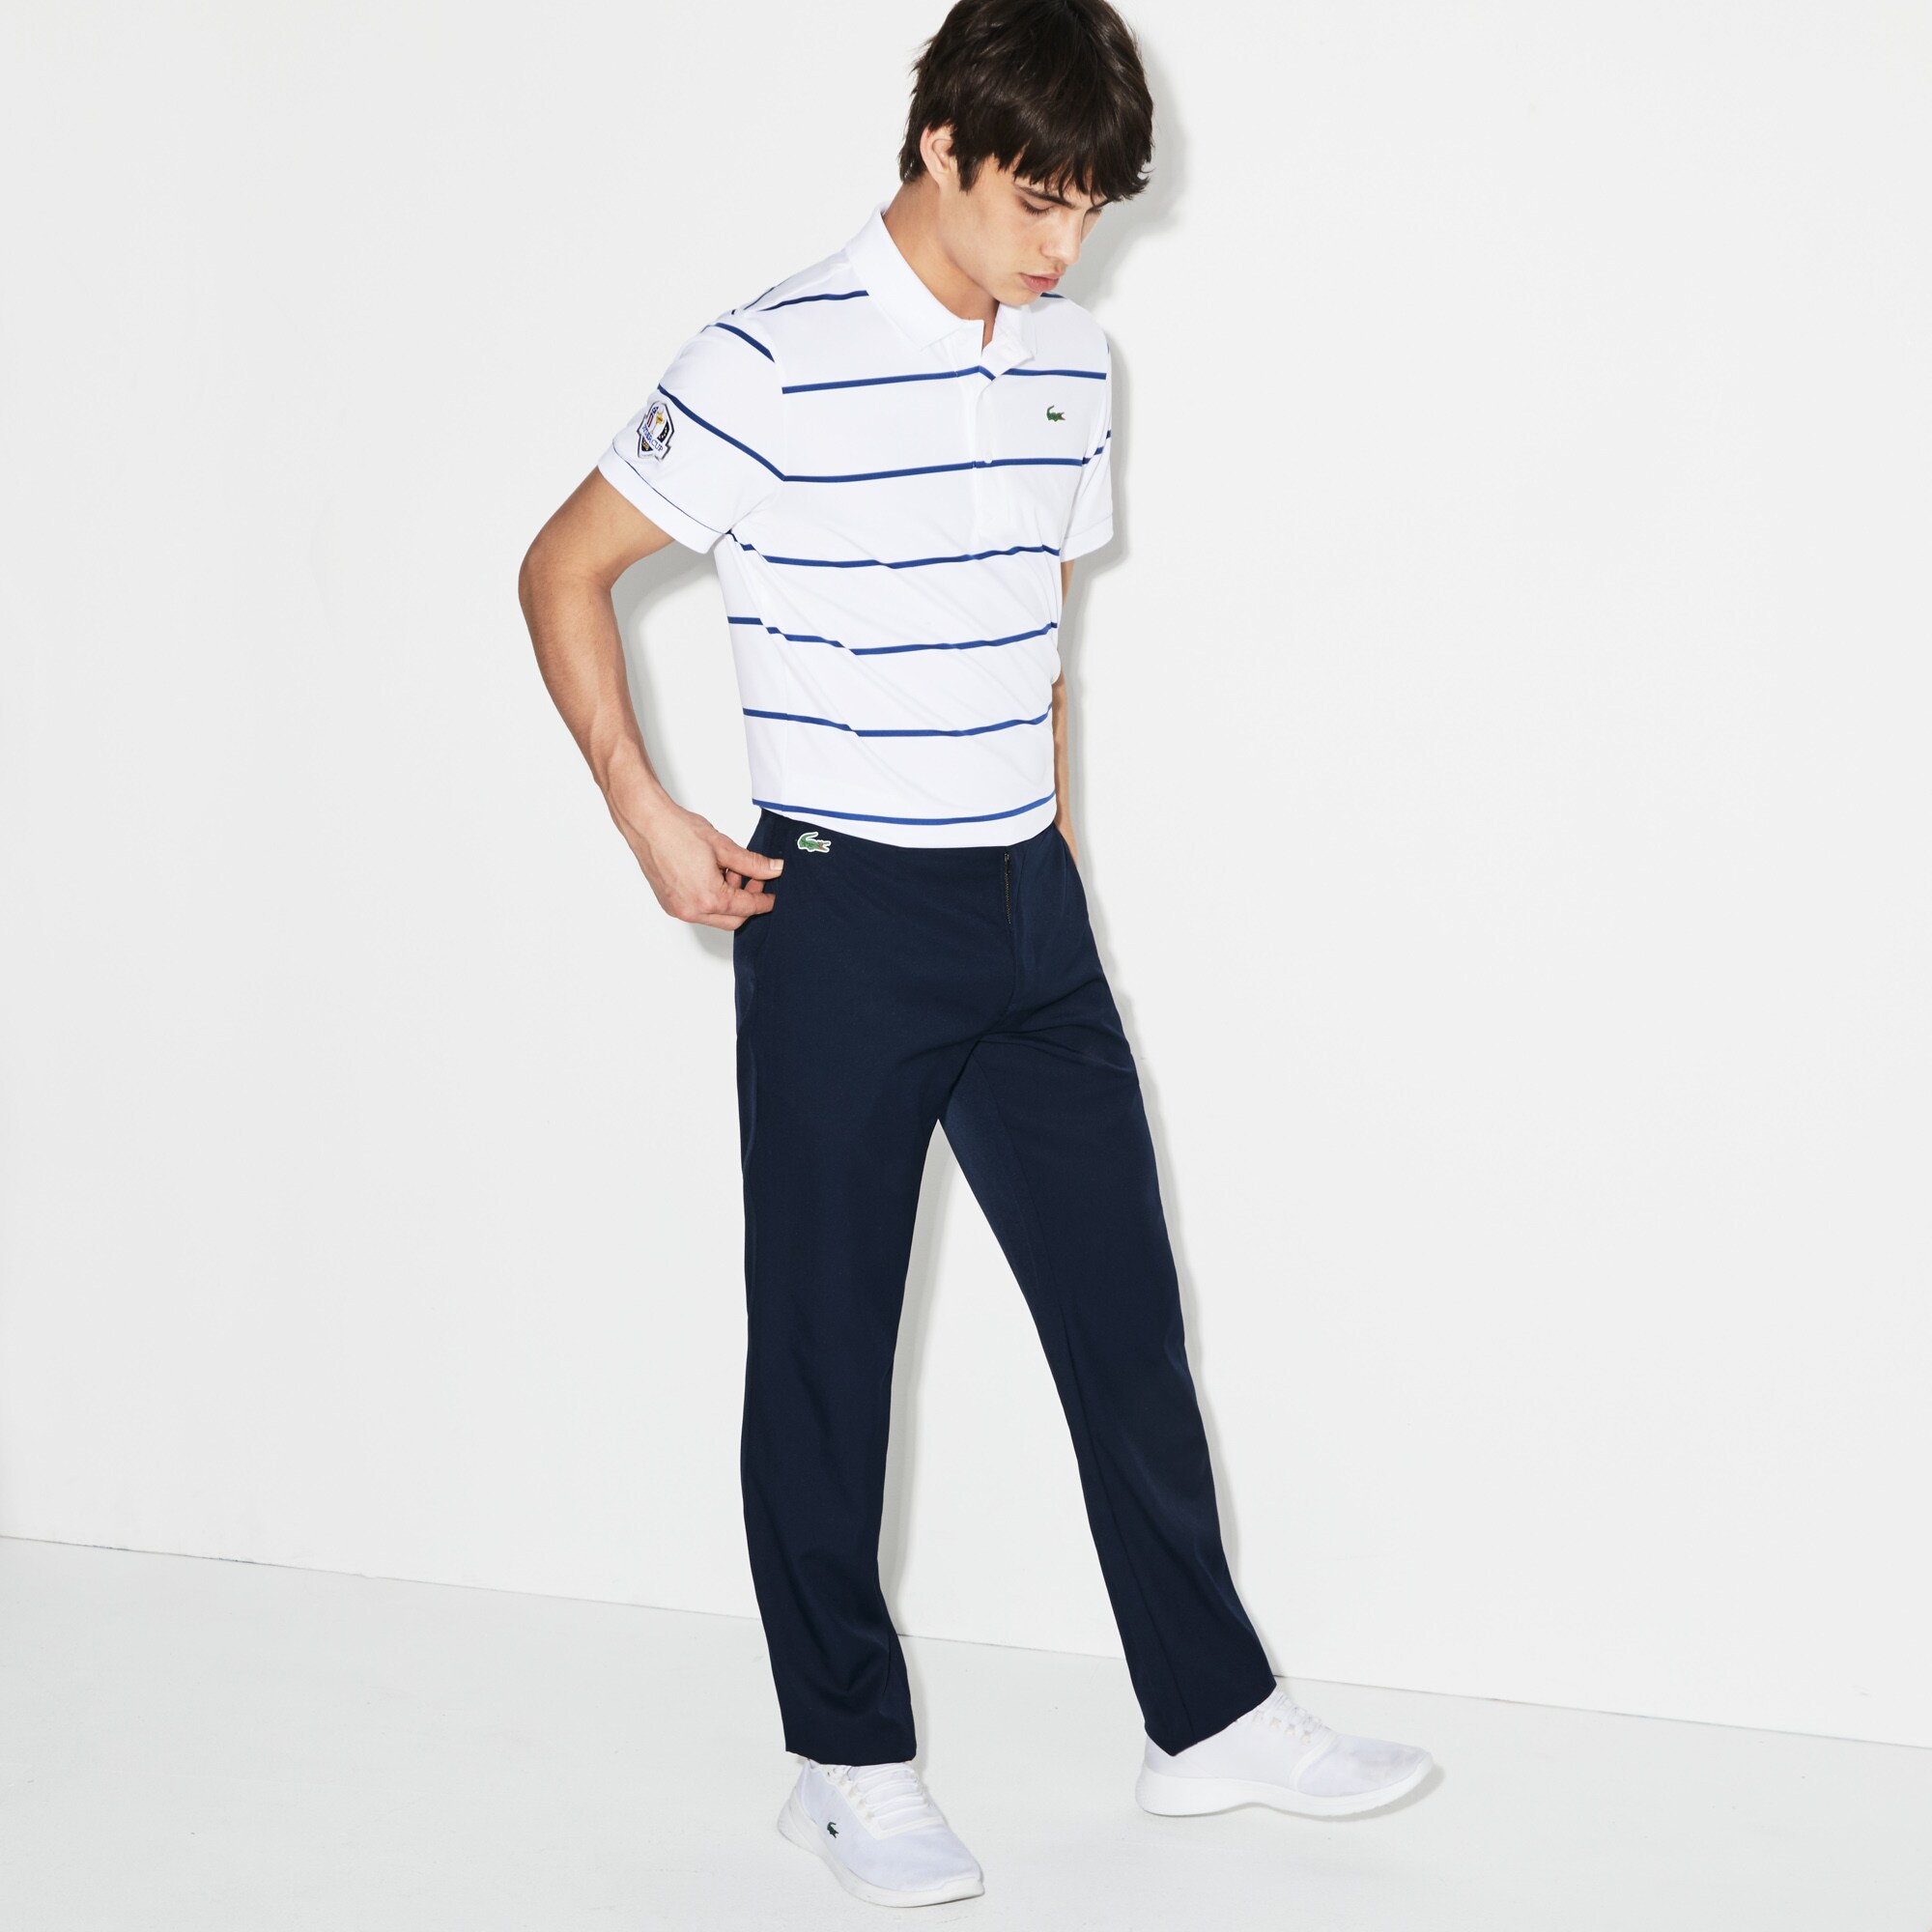 Pantalon chino Golf Lacoste SPORT en gabardine technique ultra dry uni